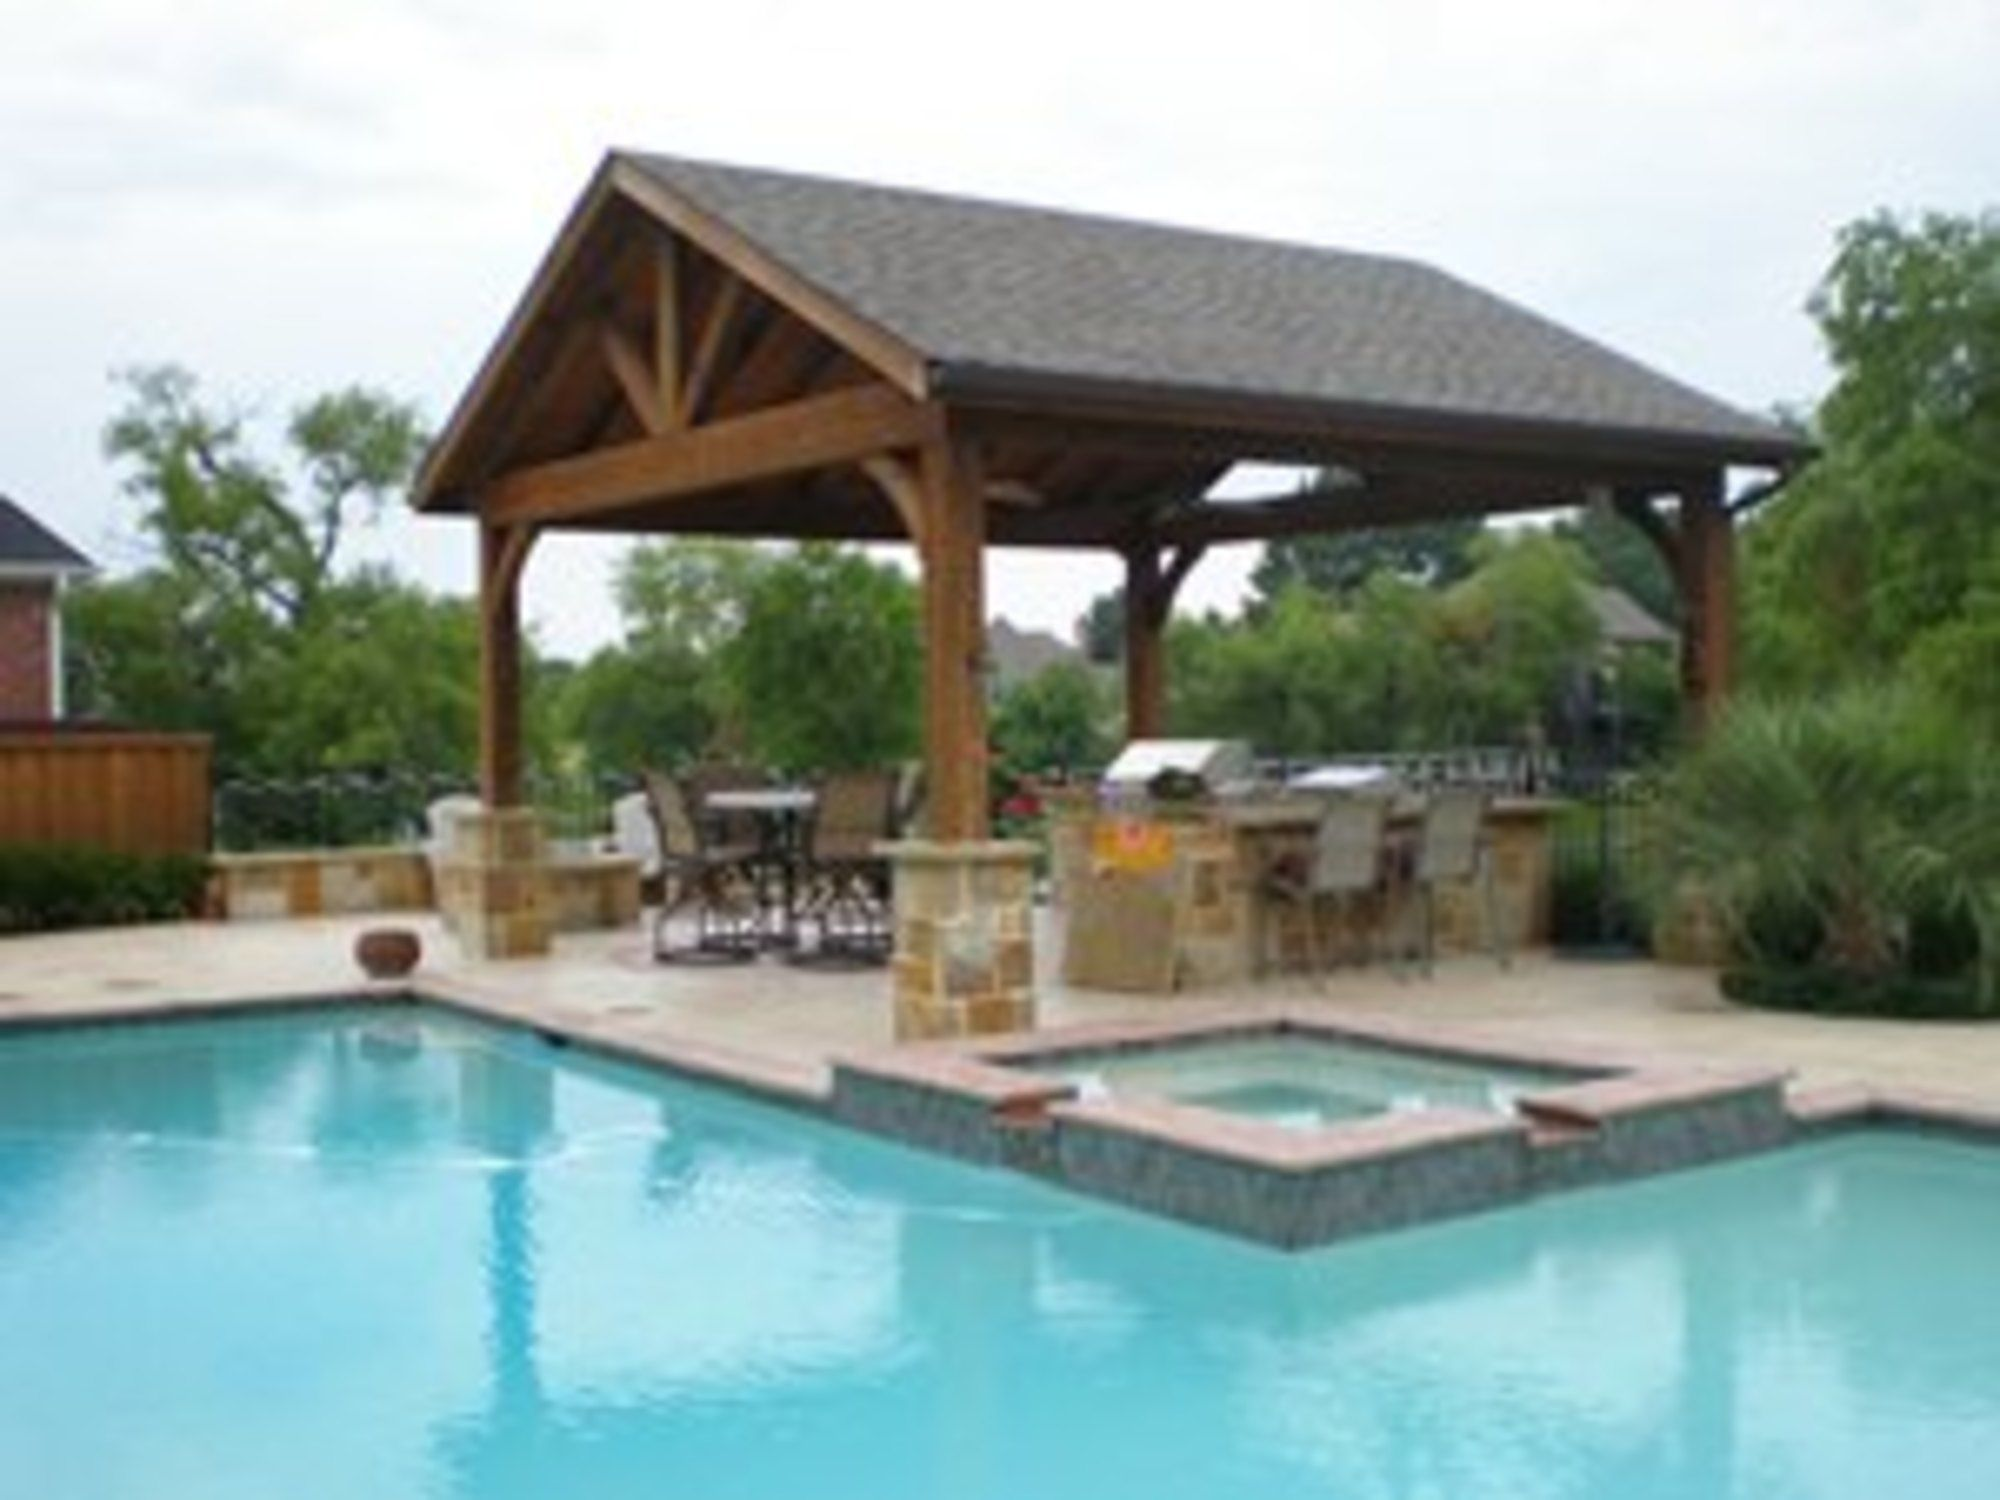 Patio Covers - Primo Outdoor Living on Primo Outdoor Living  id=33188